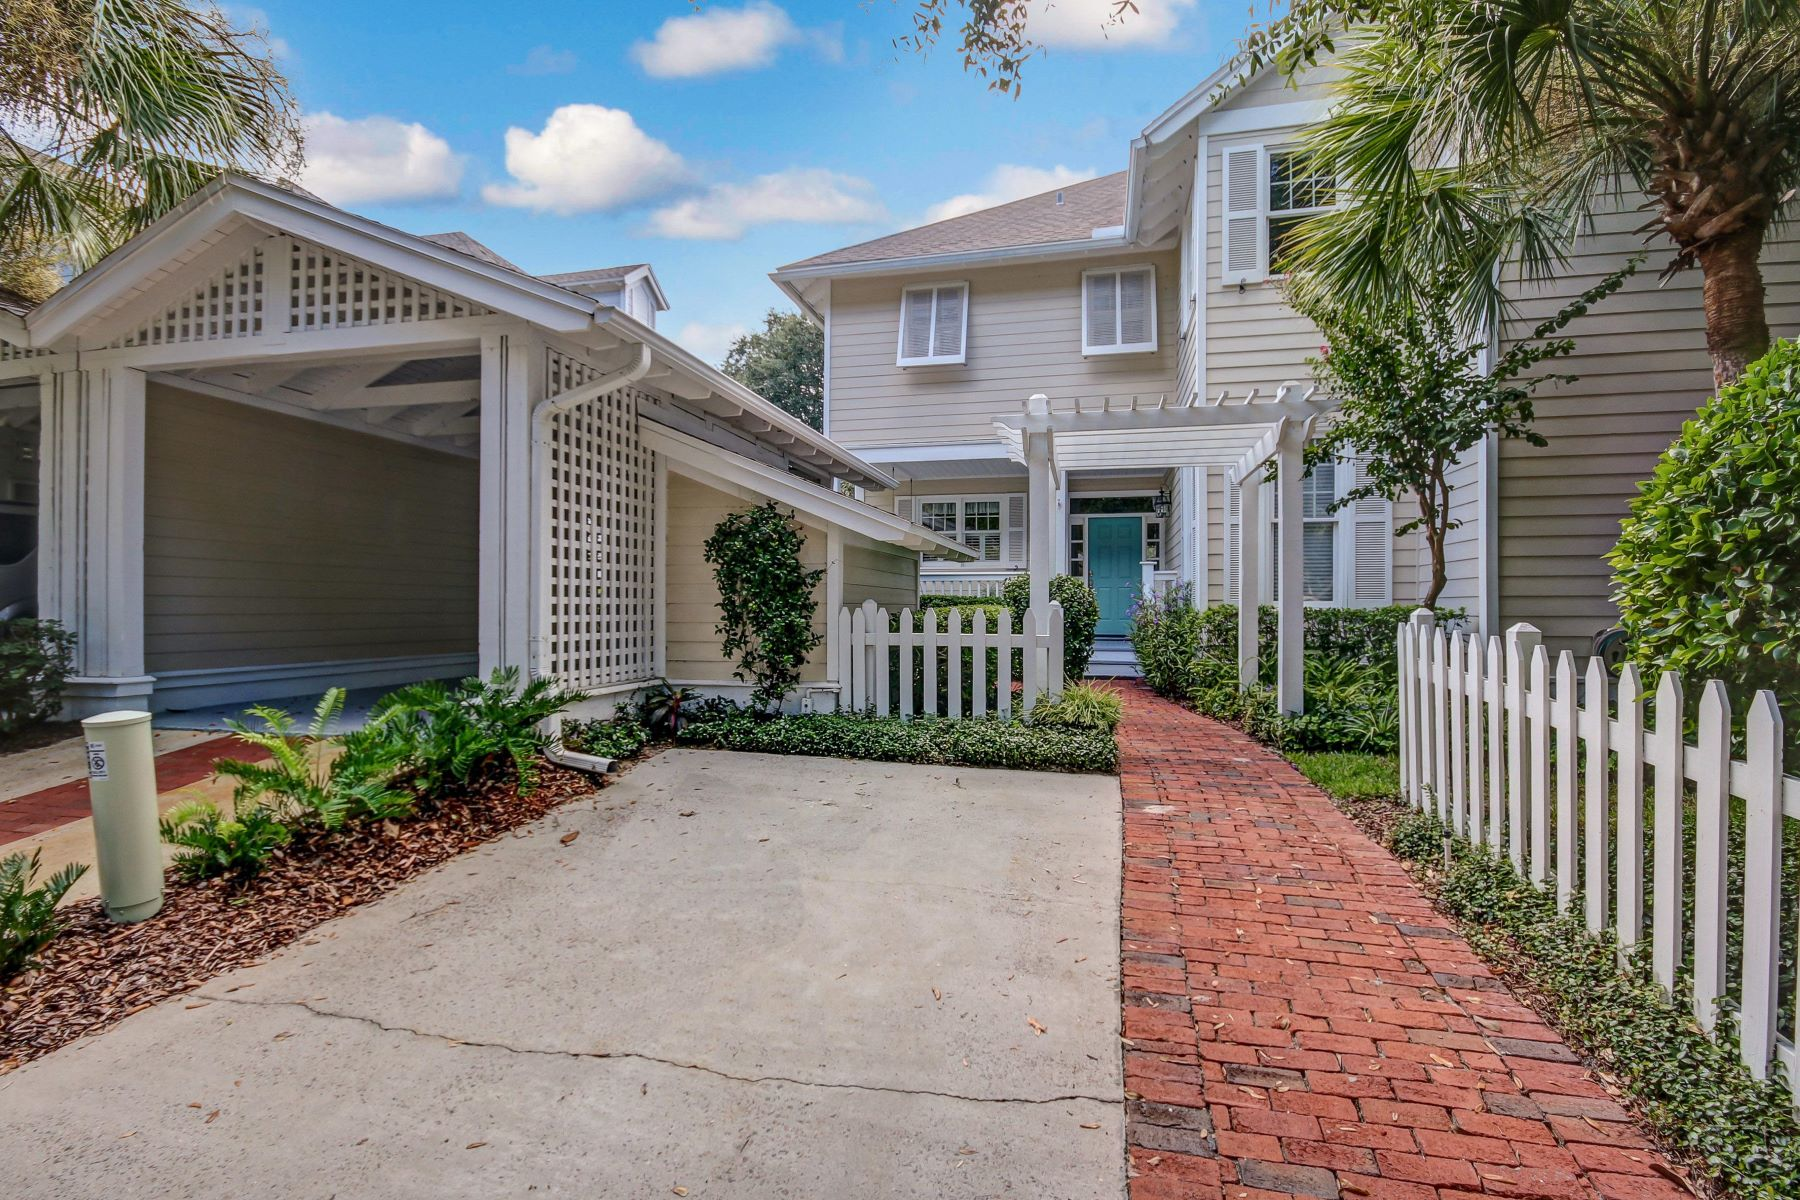 Casa unifamiliar adosada (Townhouse) por un Venta en Golf Front Plantation Home 19 Little Dunes Circle Amelia Island, Florida, 32034 Estados Unidos